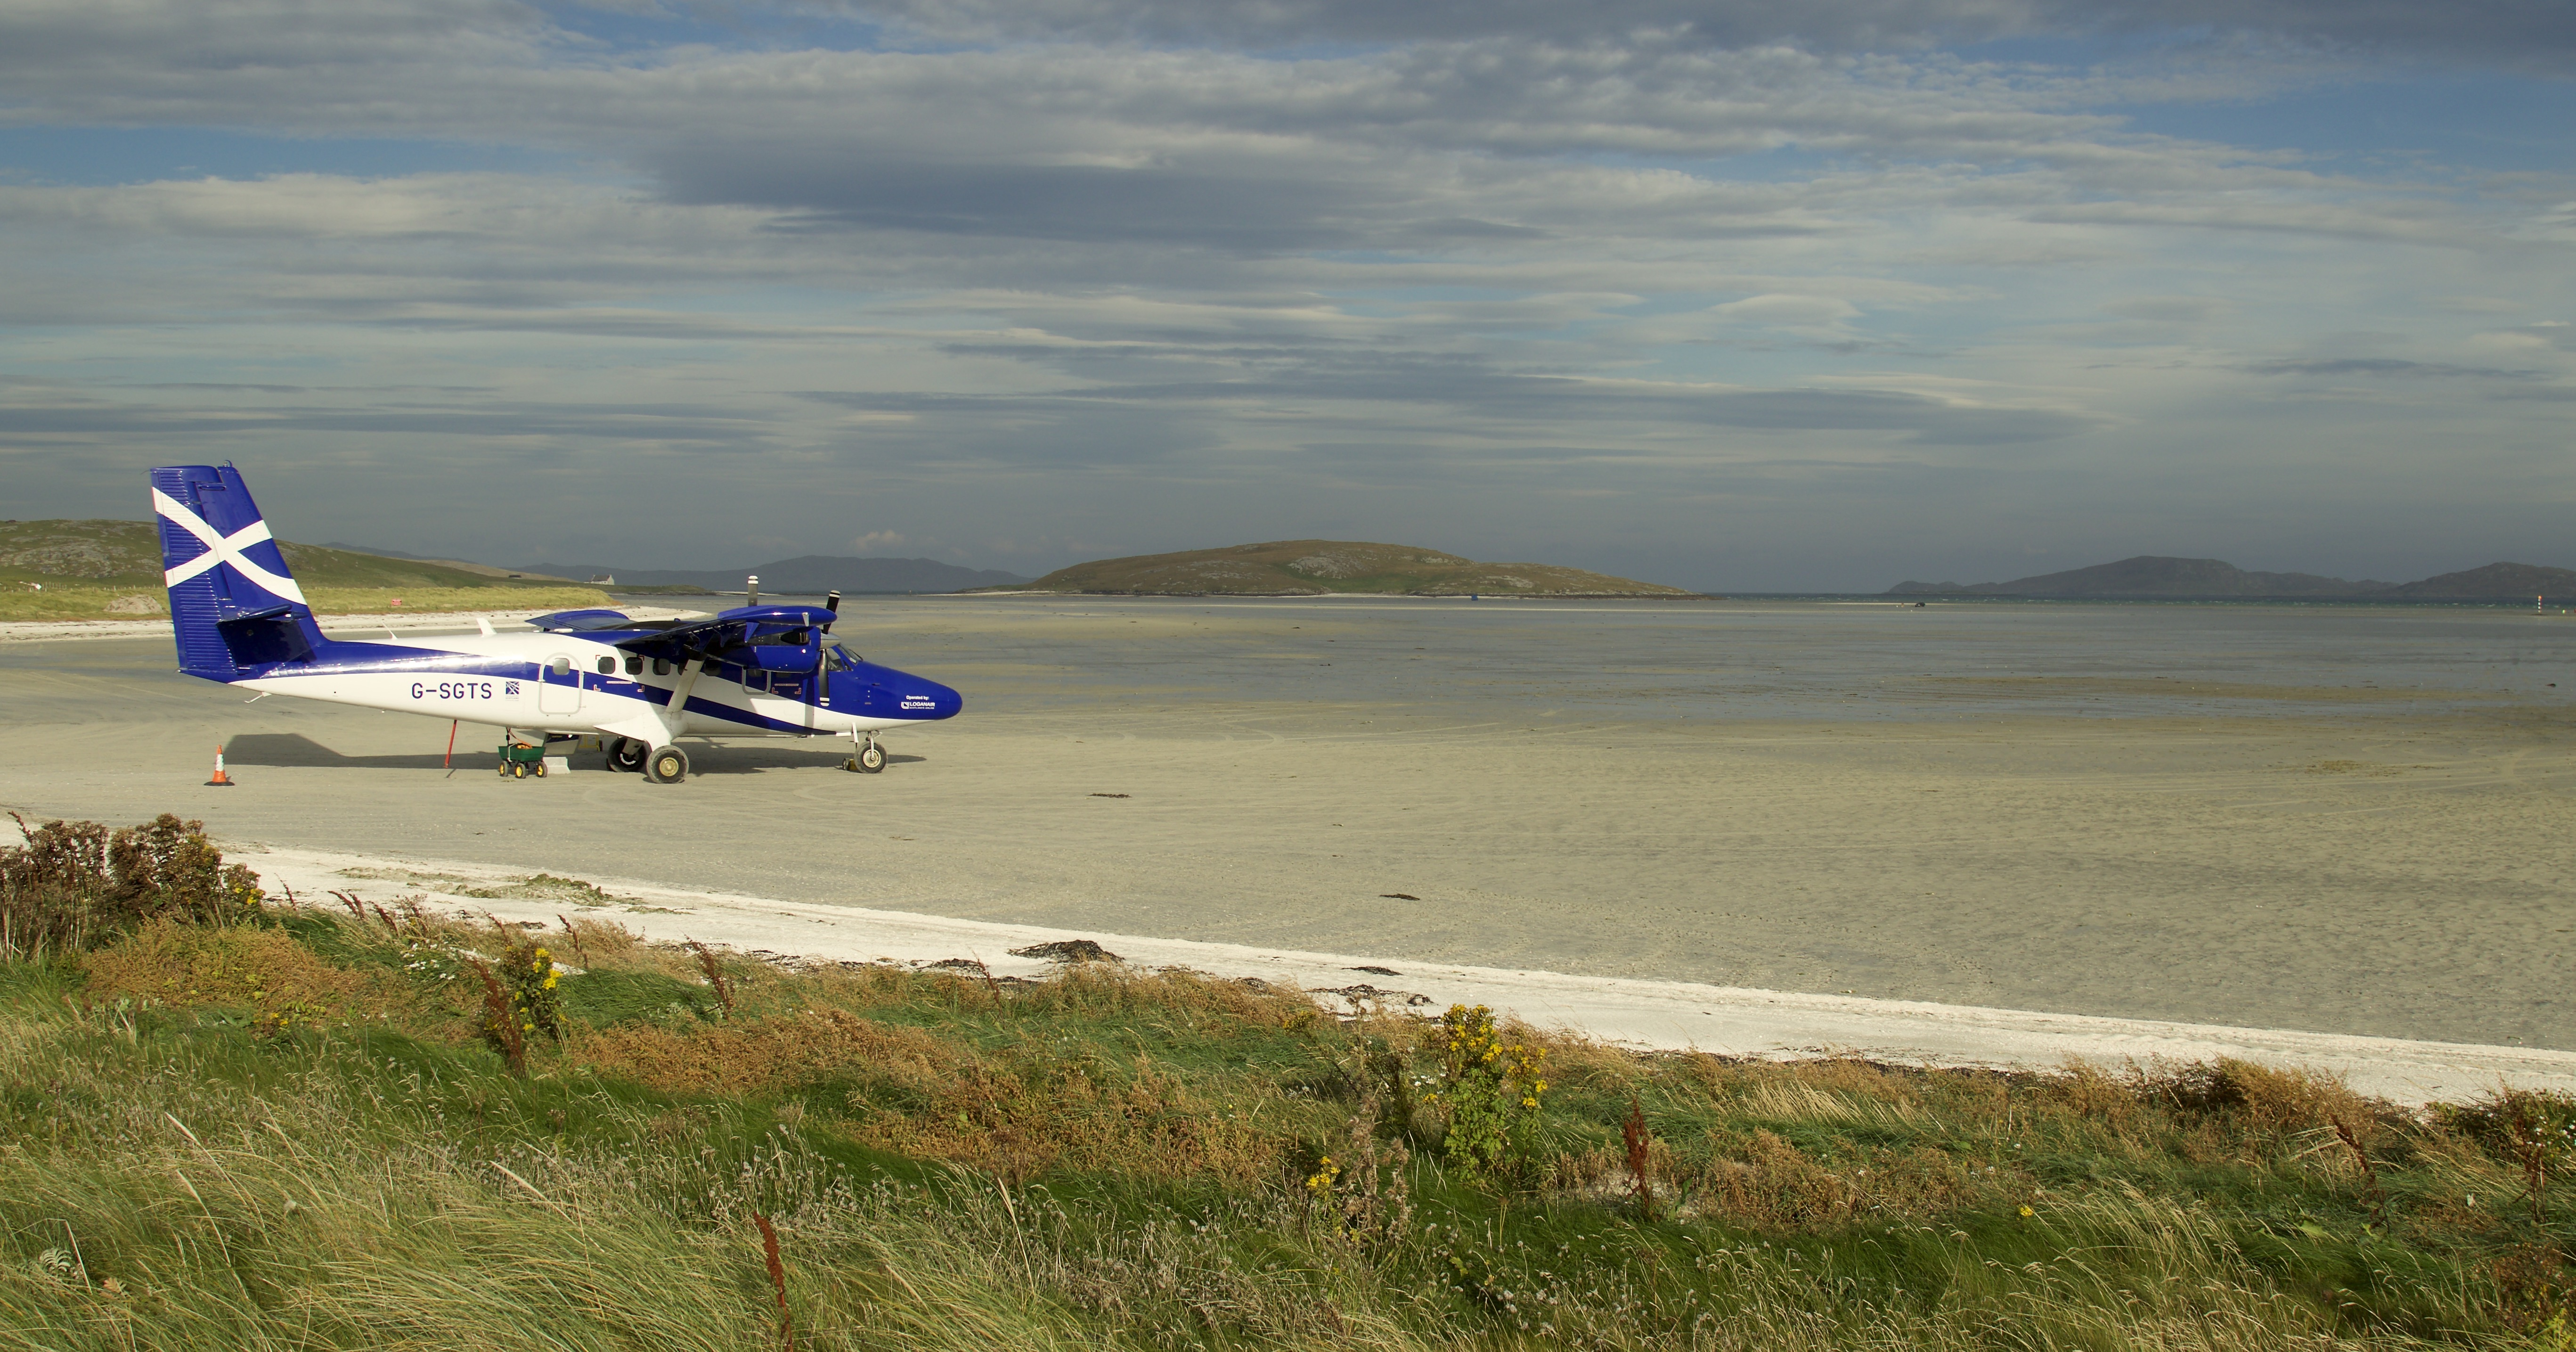 Aircraft on the runway at Barra Airport